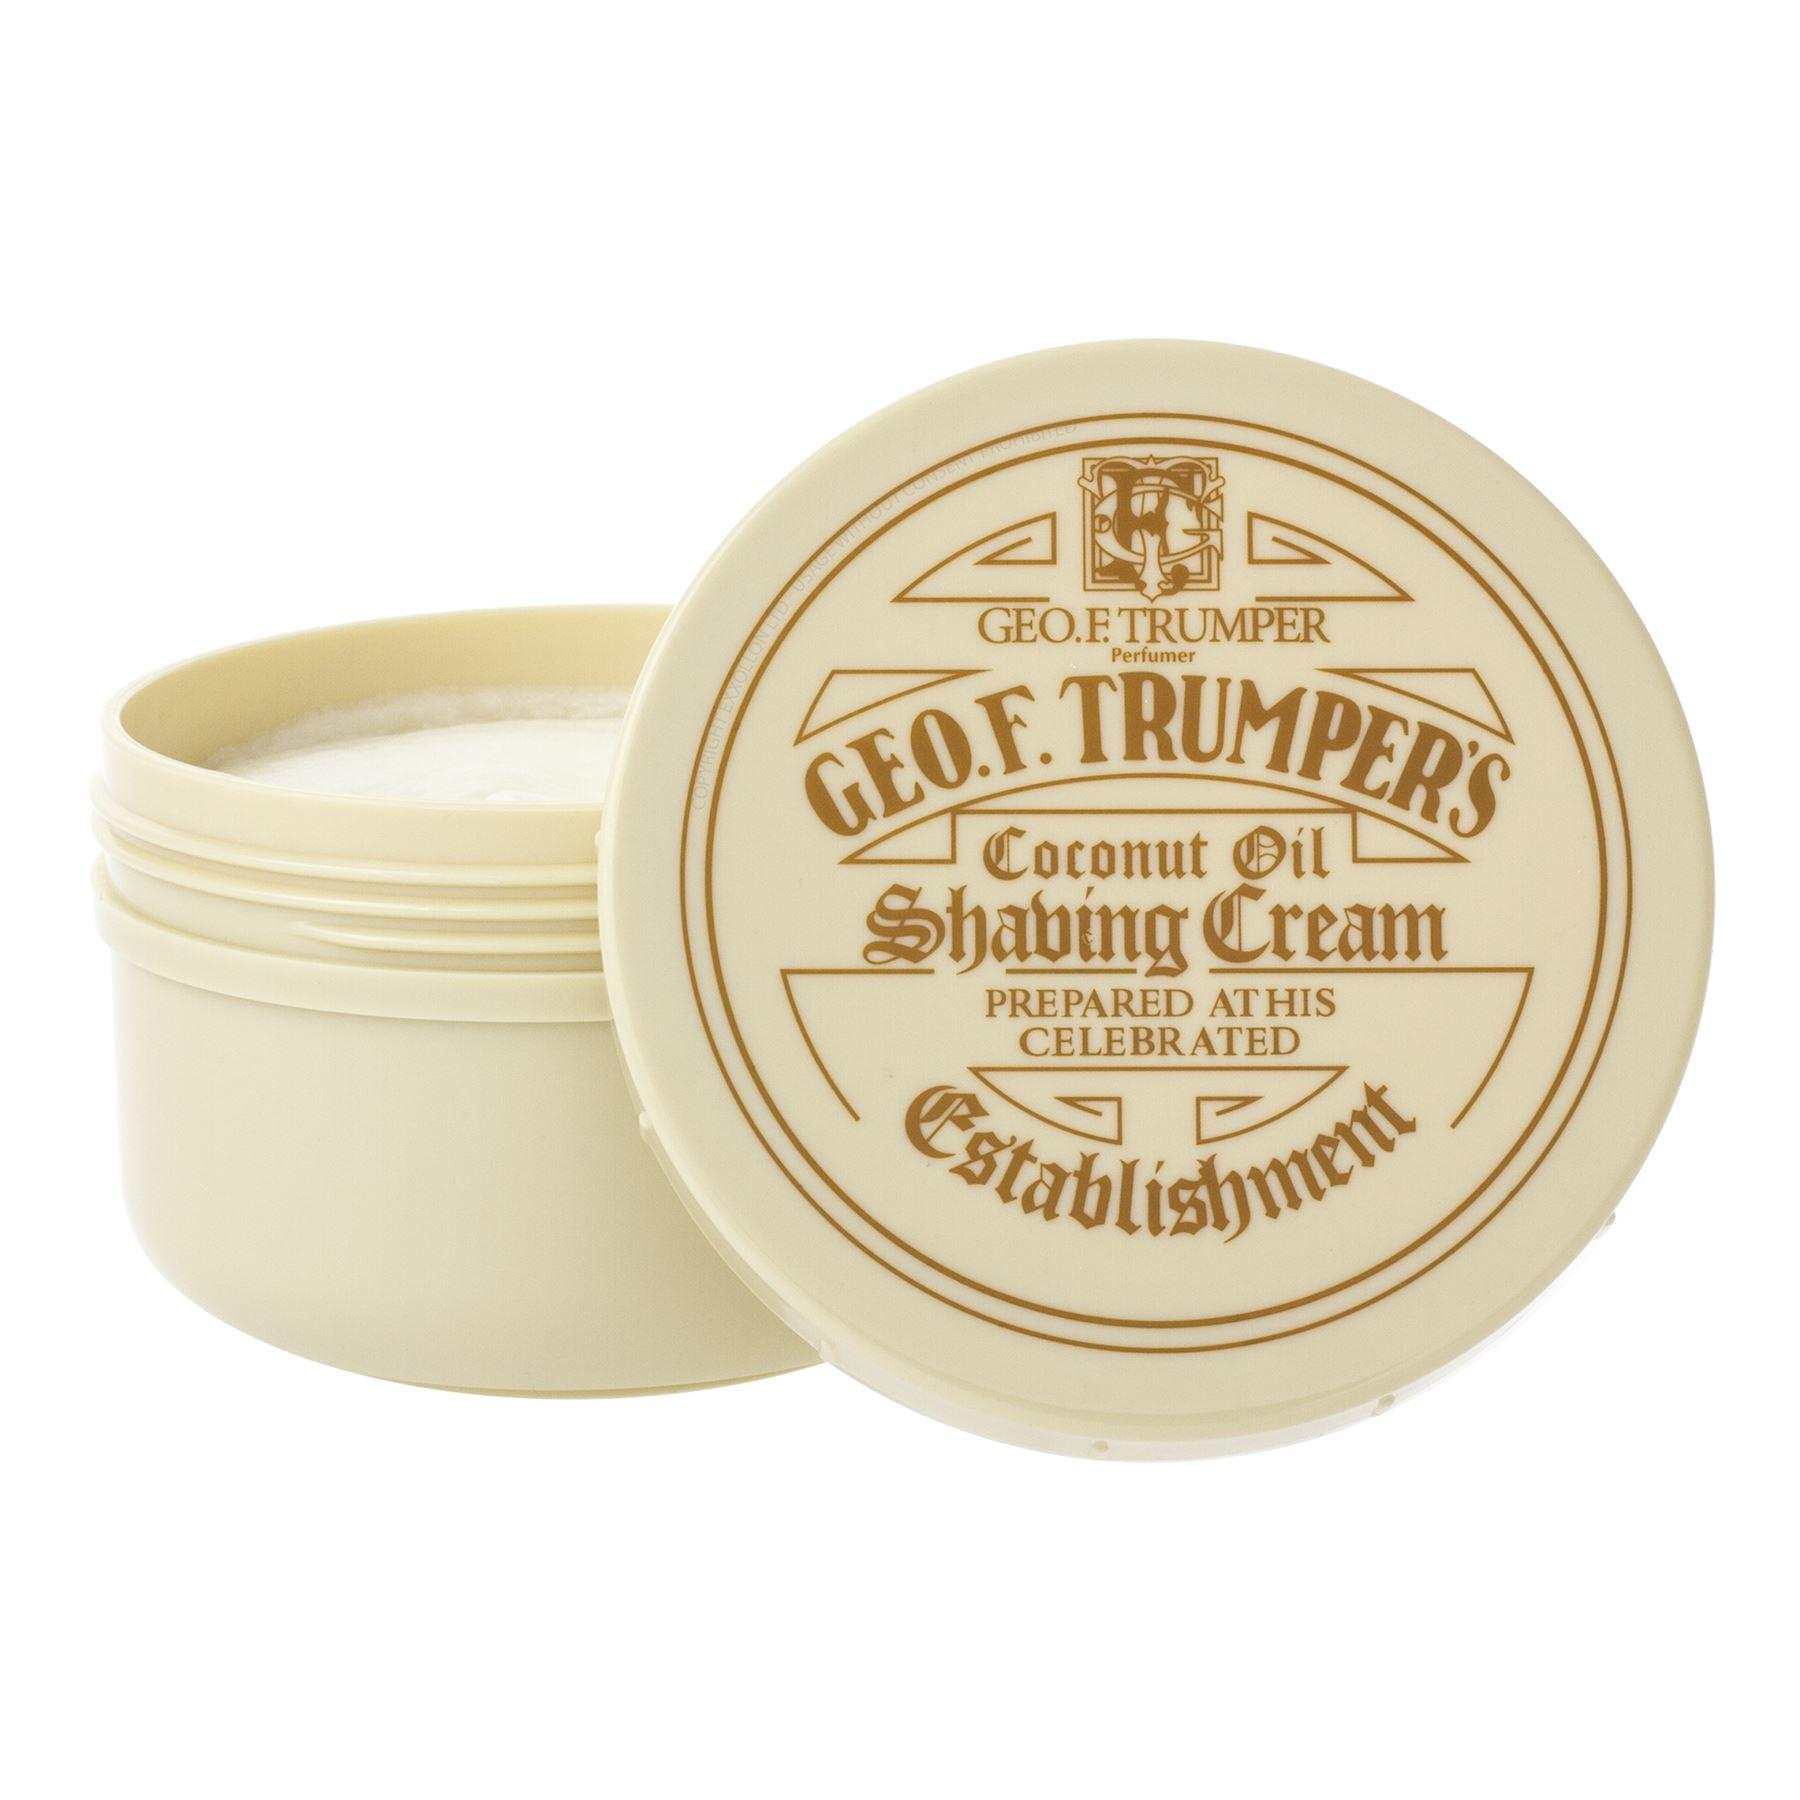 Geo F Trumper Coconut Shaving Cream Bowl